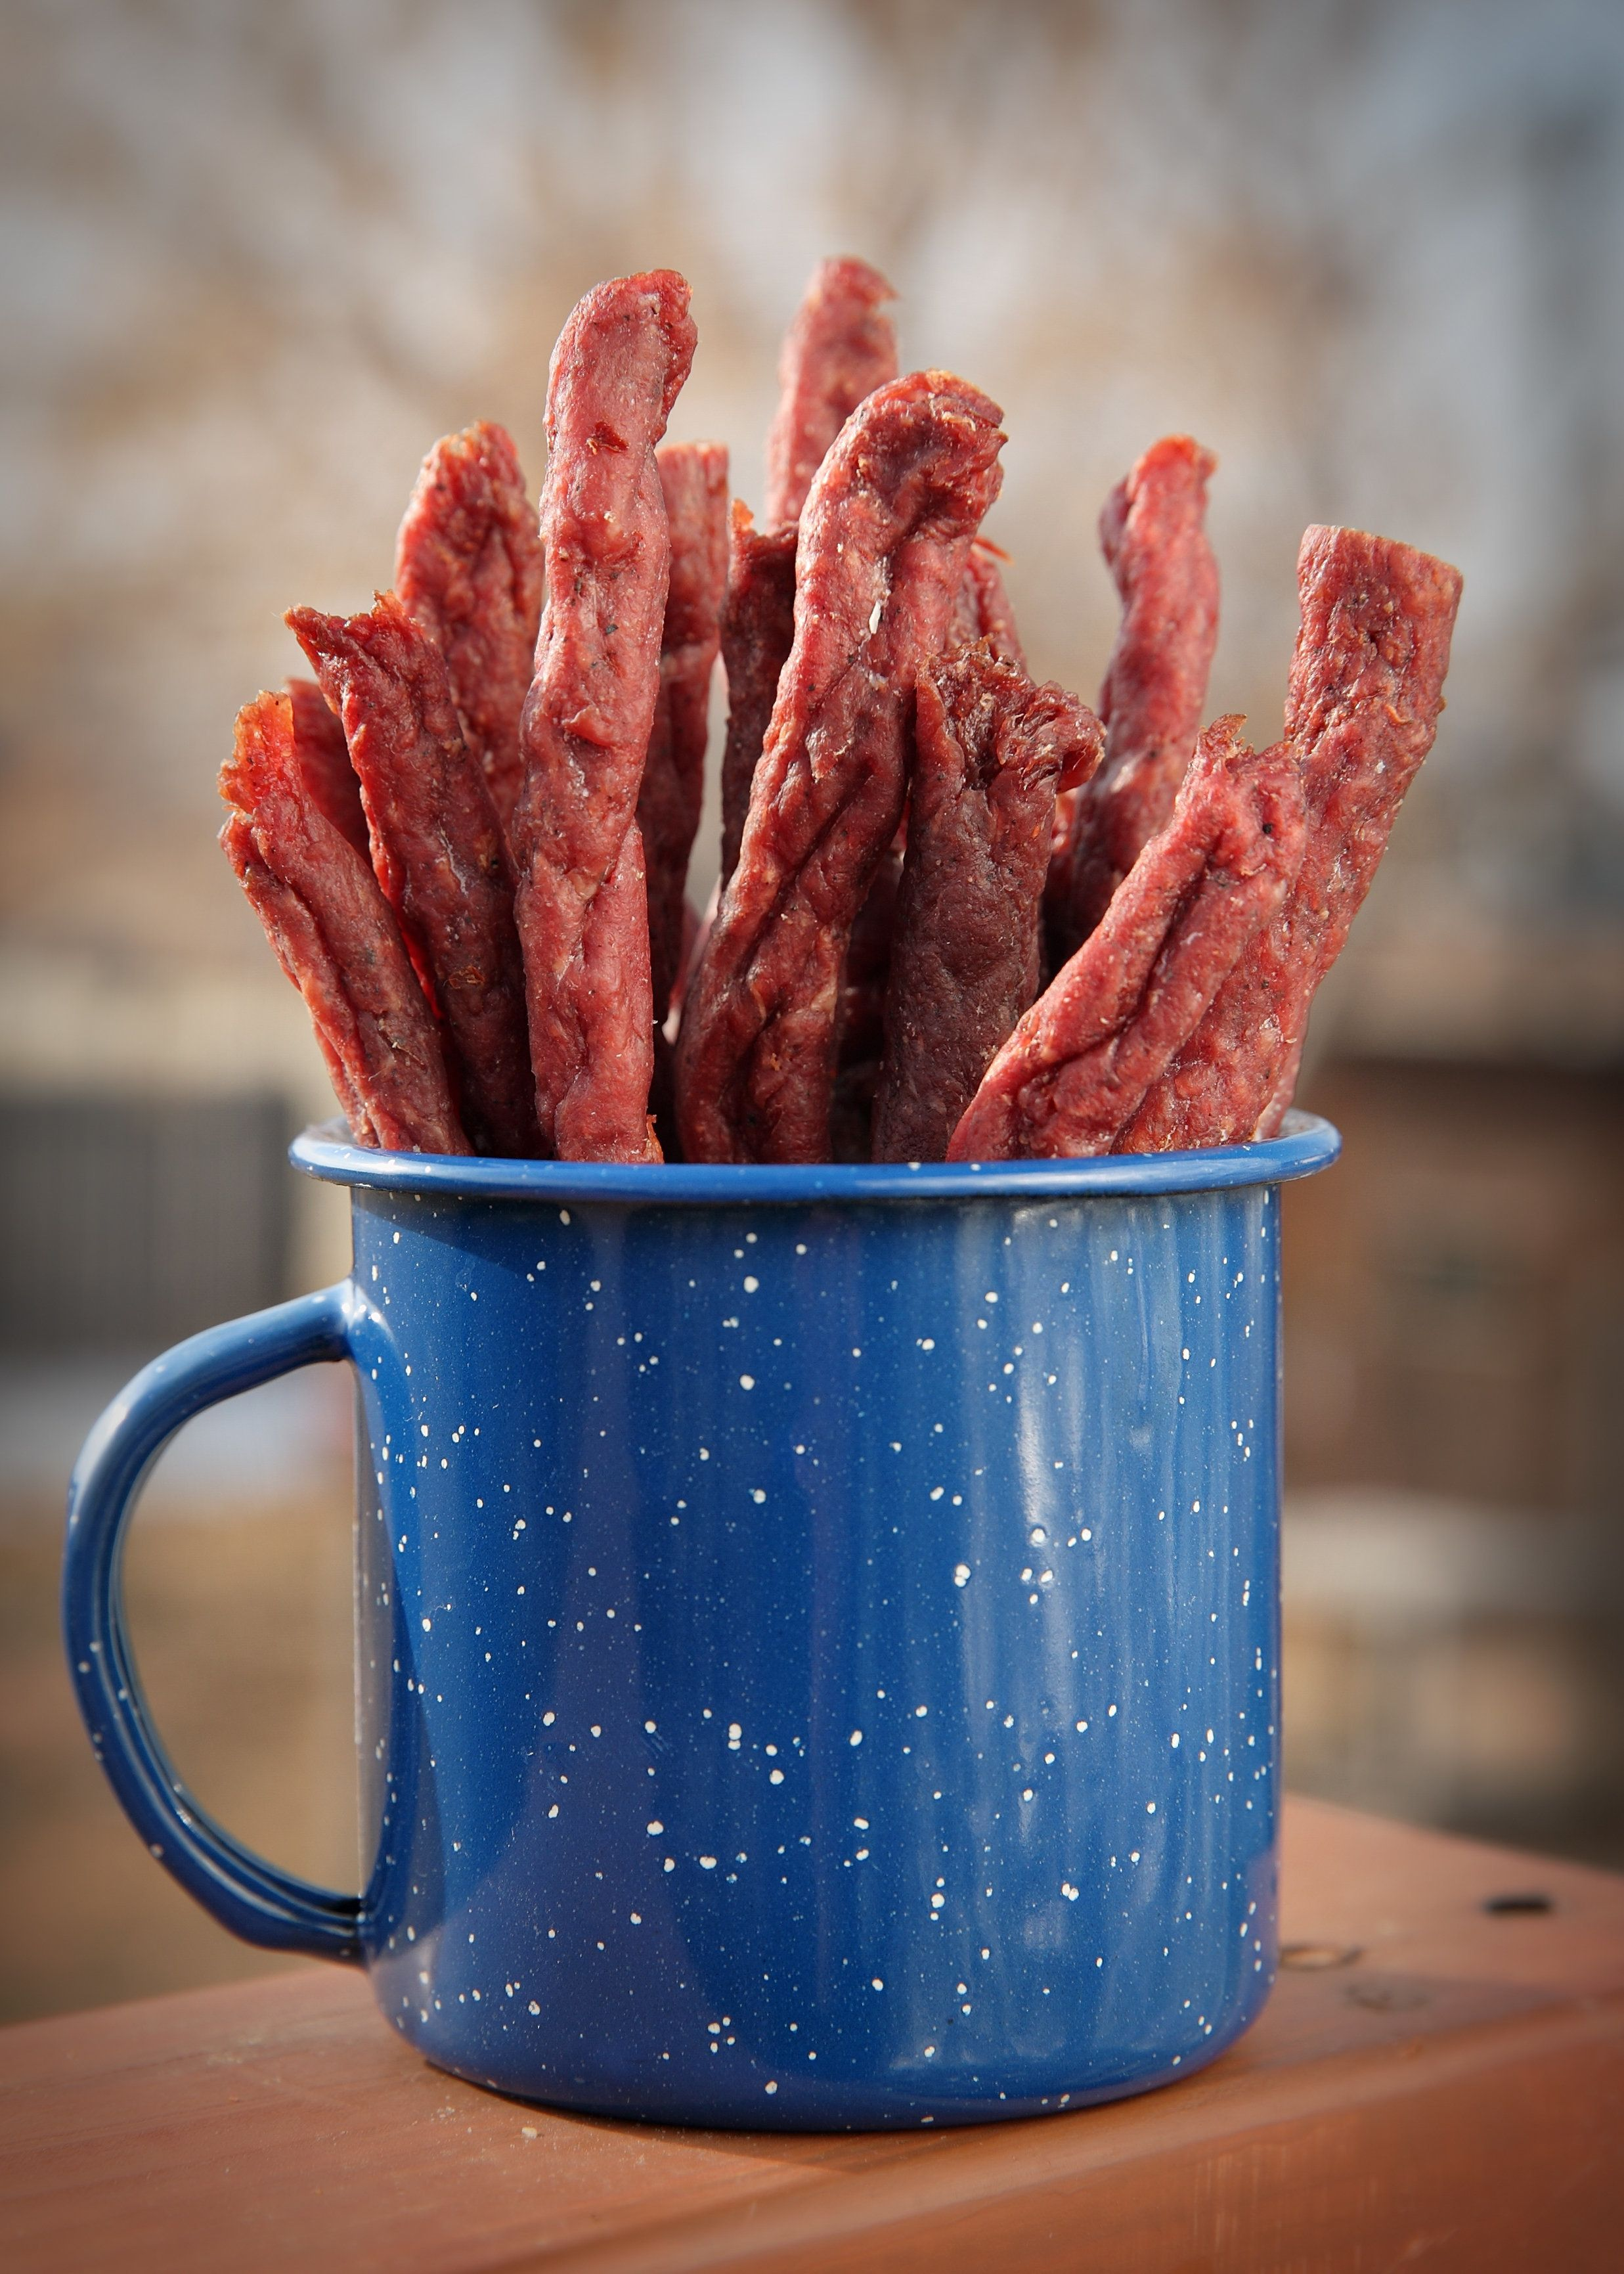 close-up mug of homemade jerky in outdoor setting